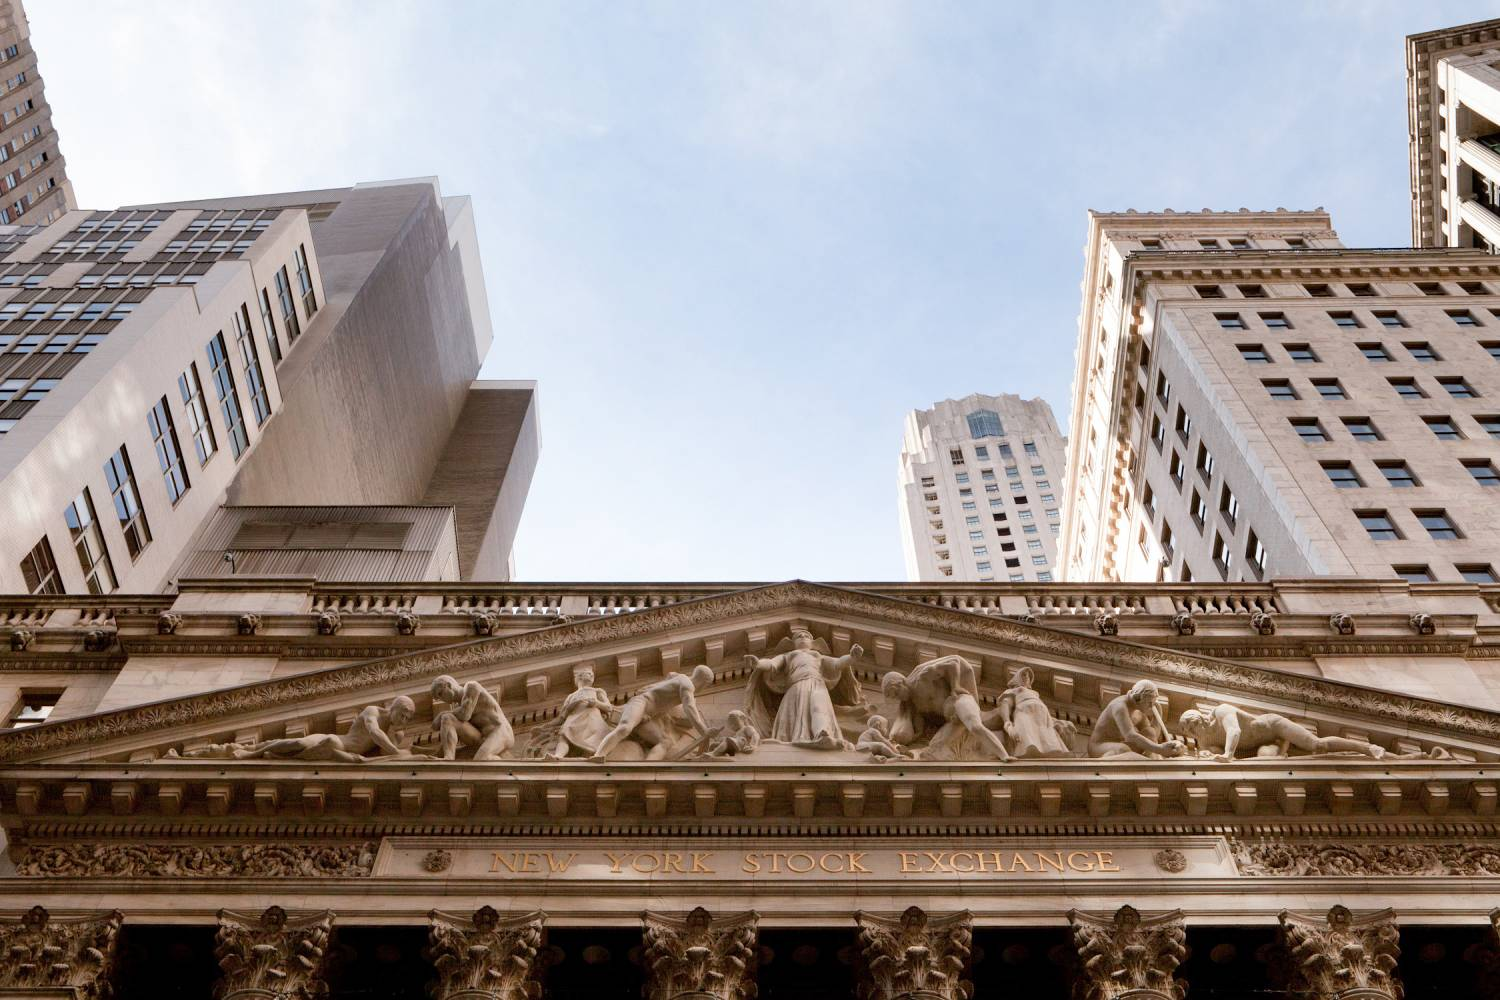 Detail of the New York Stock Exchange exterior